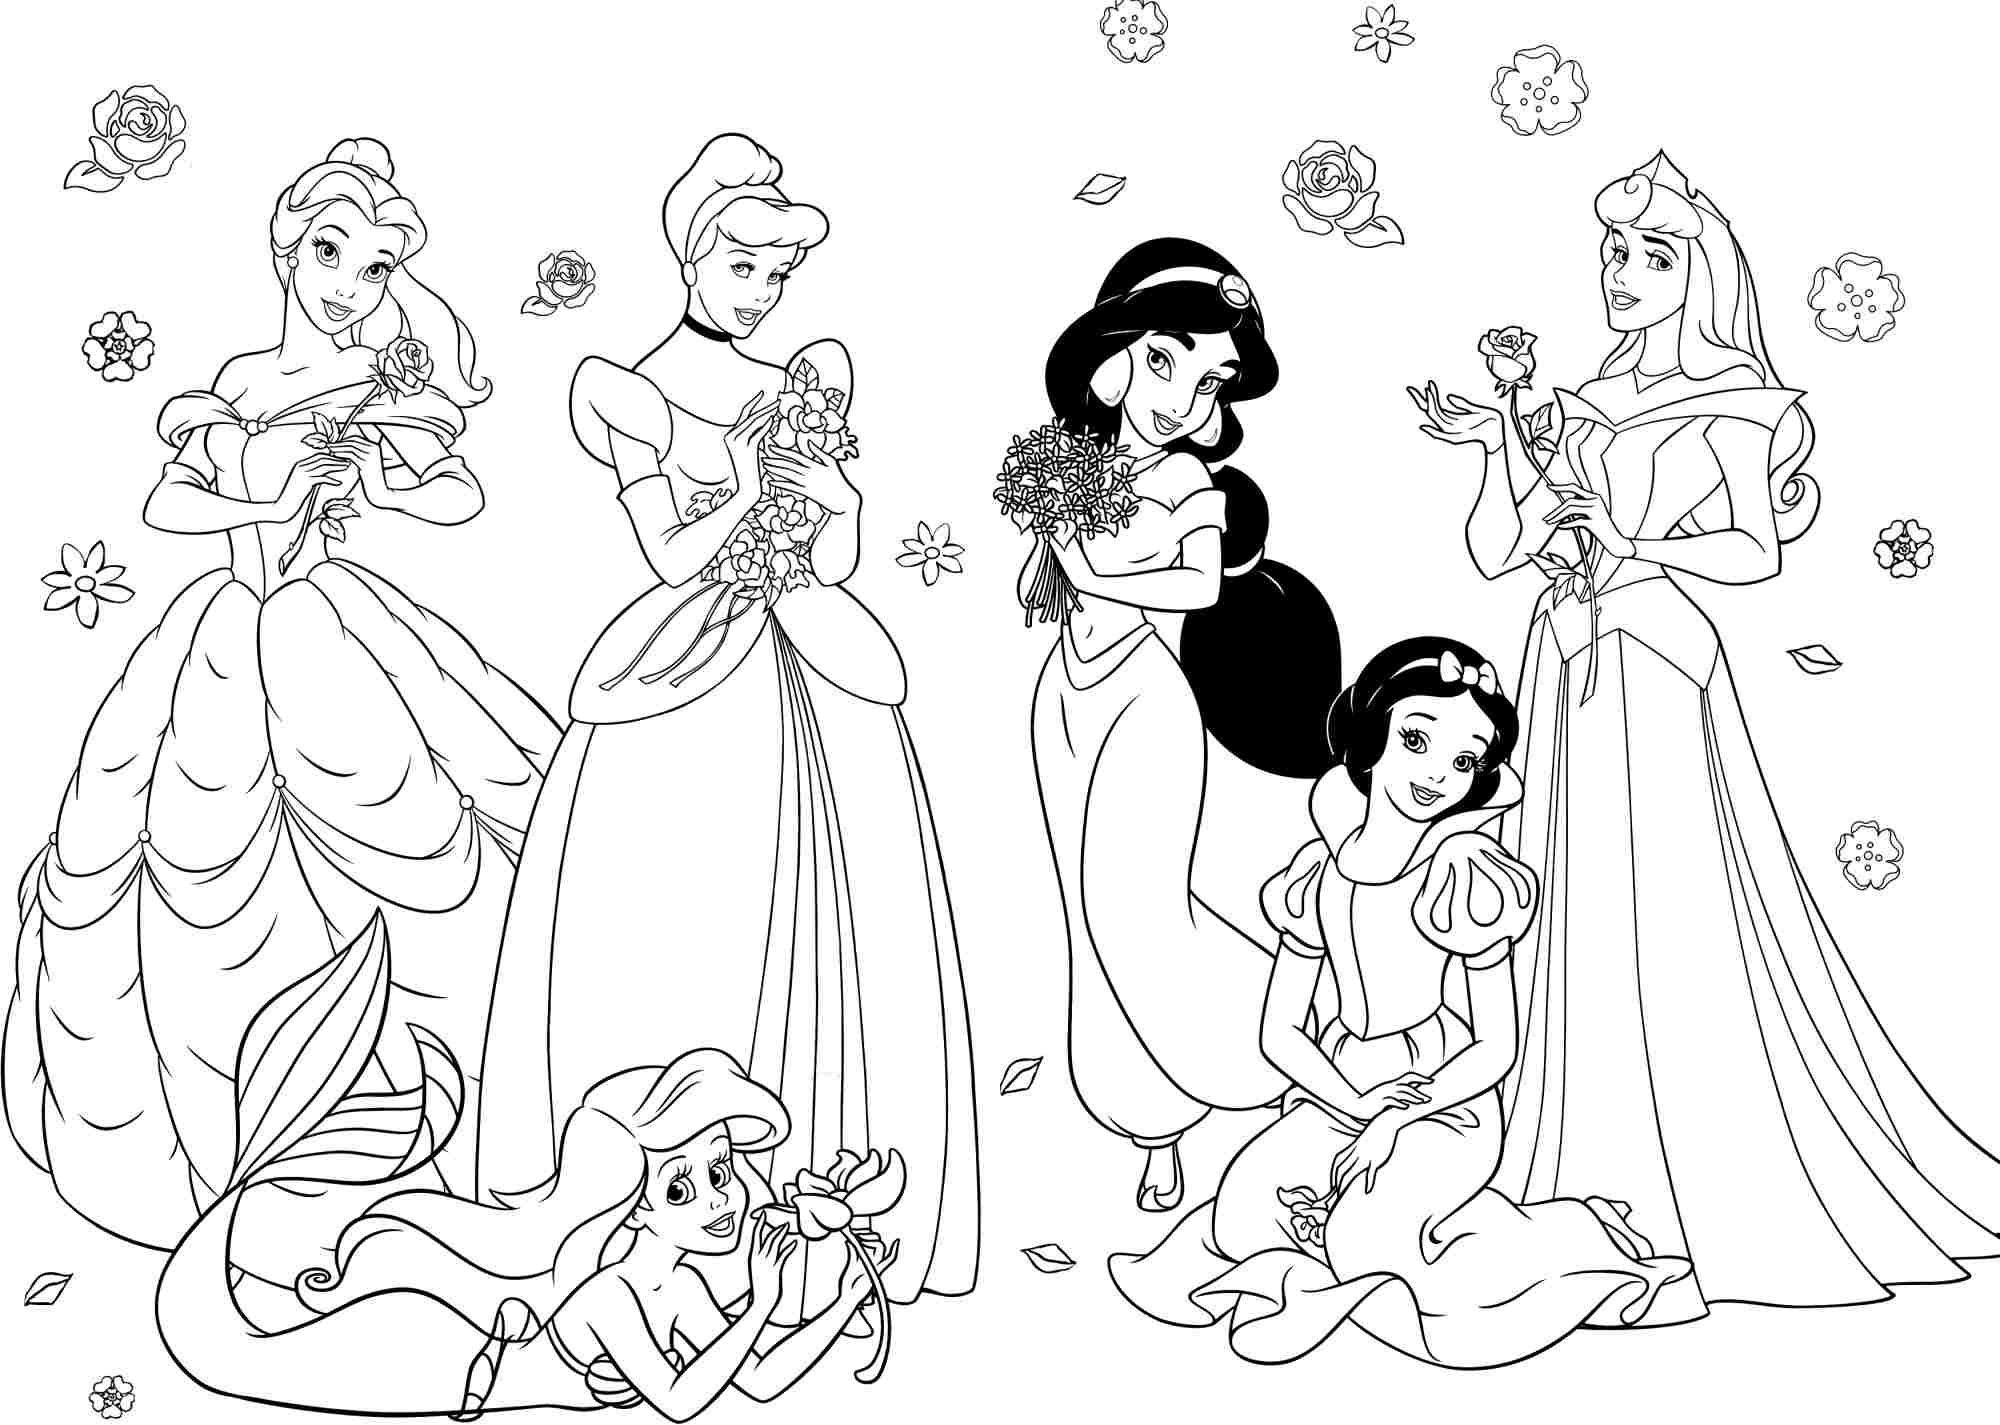 princess coloring pages for girls free large images - Princess Print Out Coloring Pages